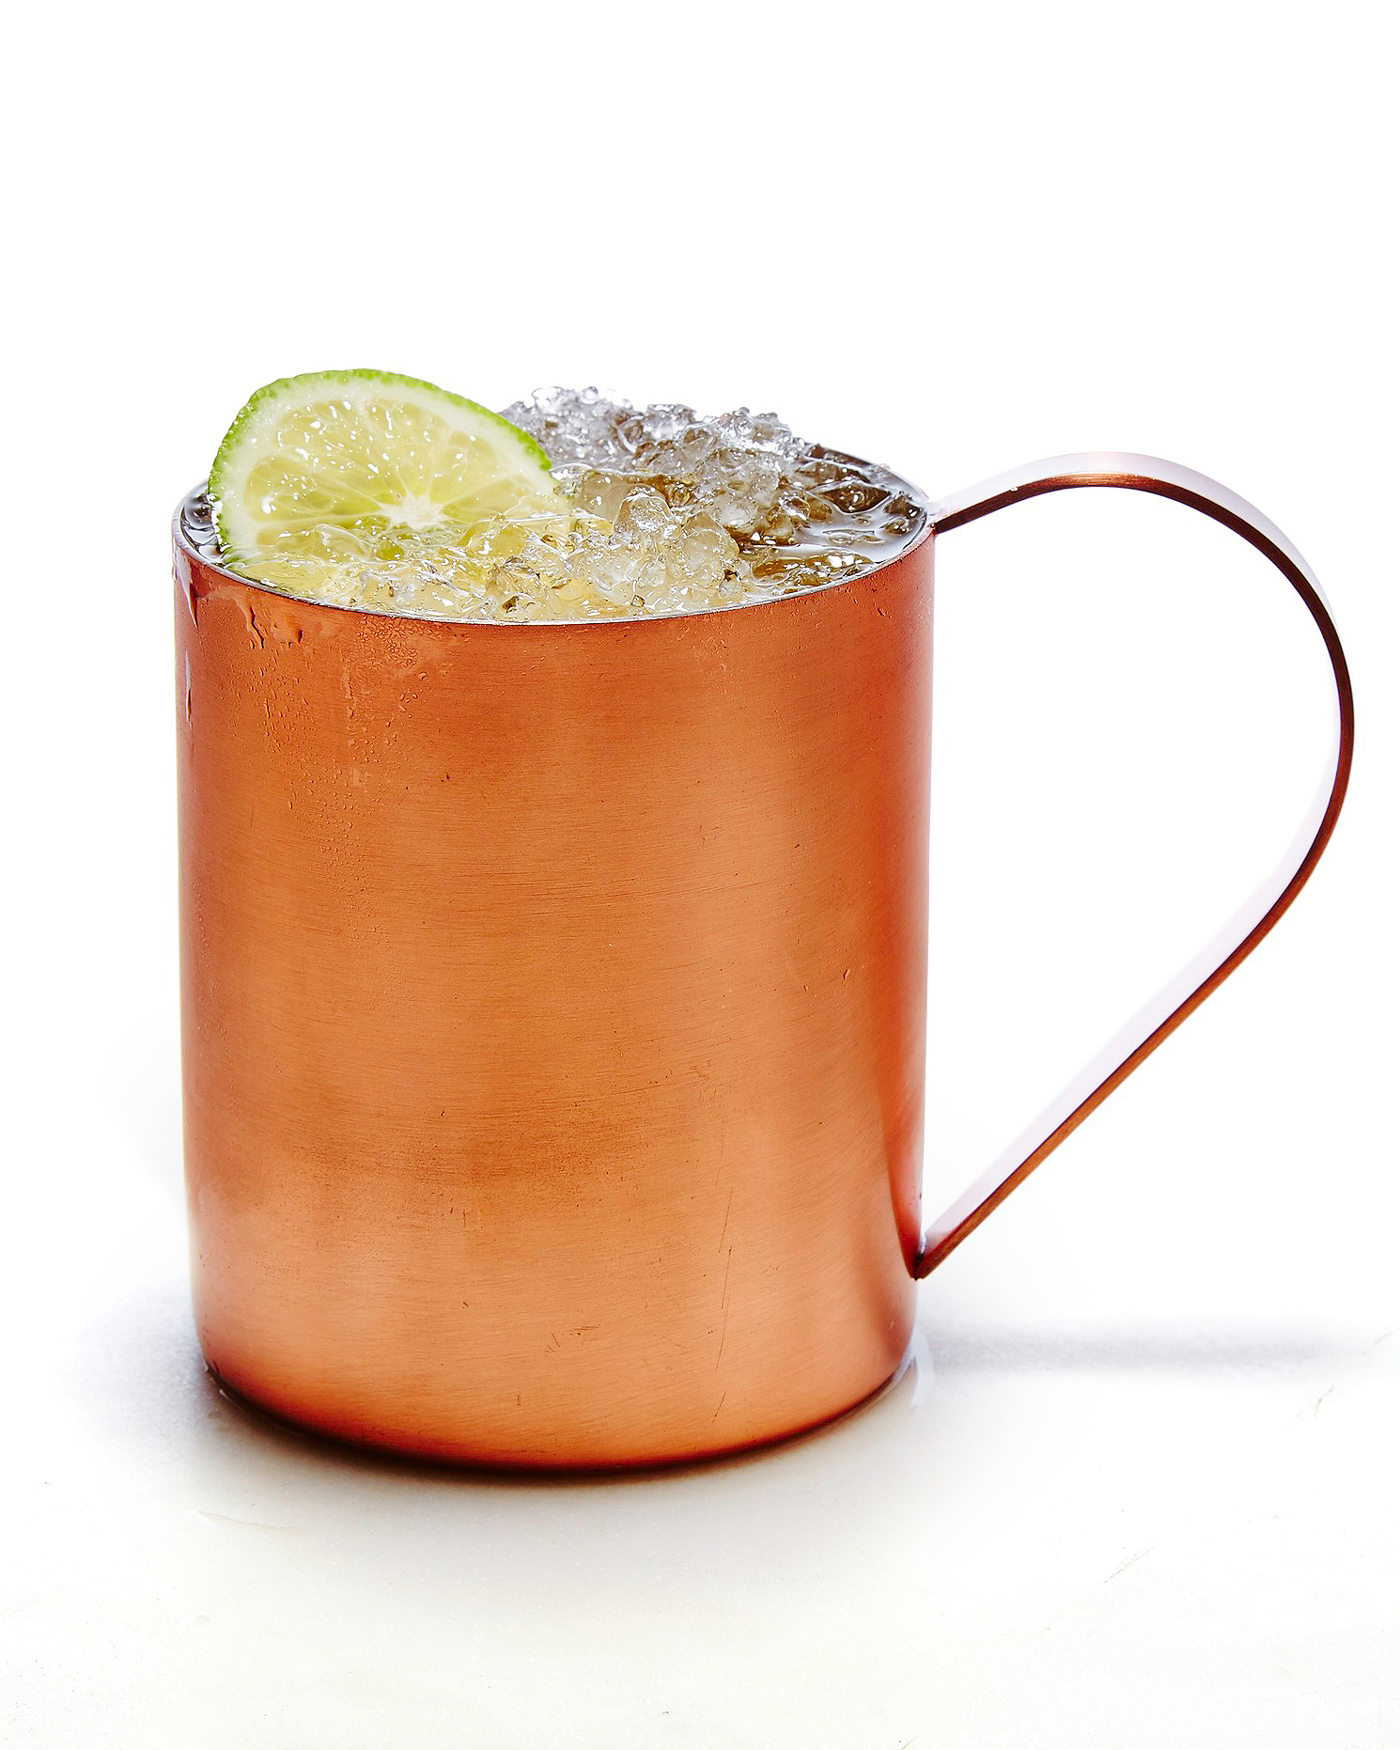 moscow-mule-cocktail-102882437.jpg